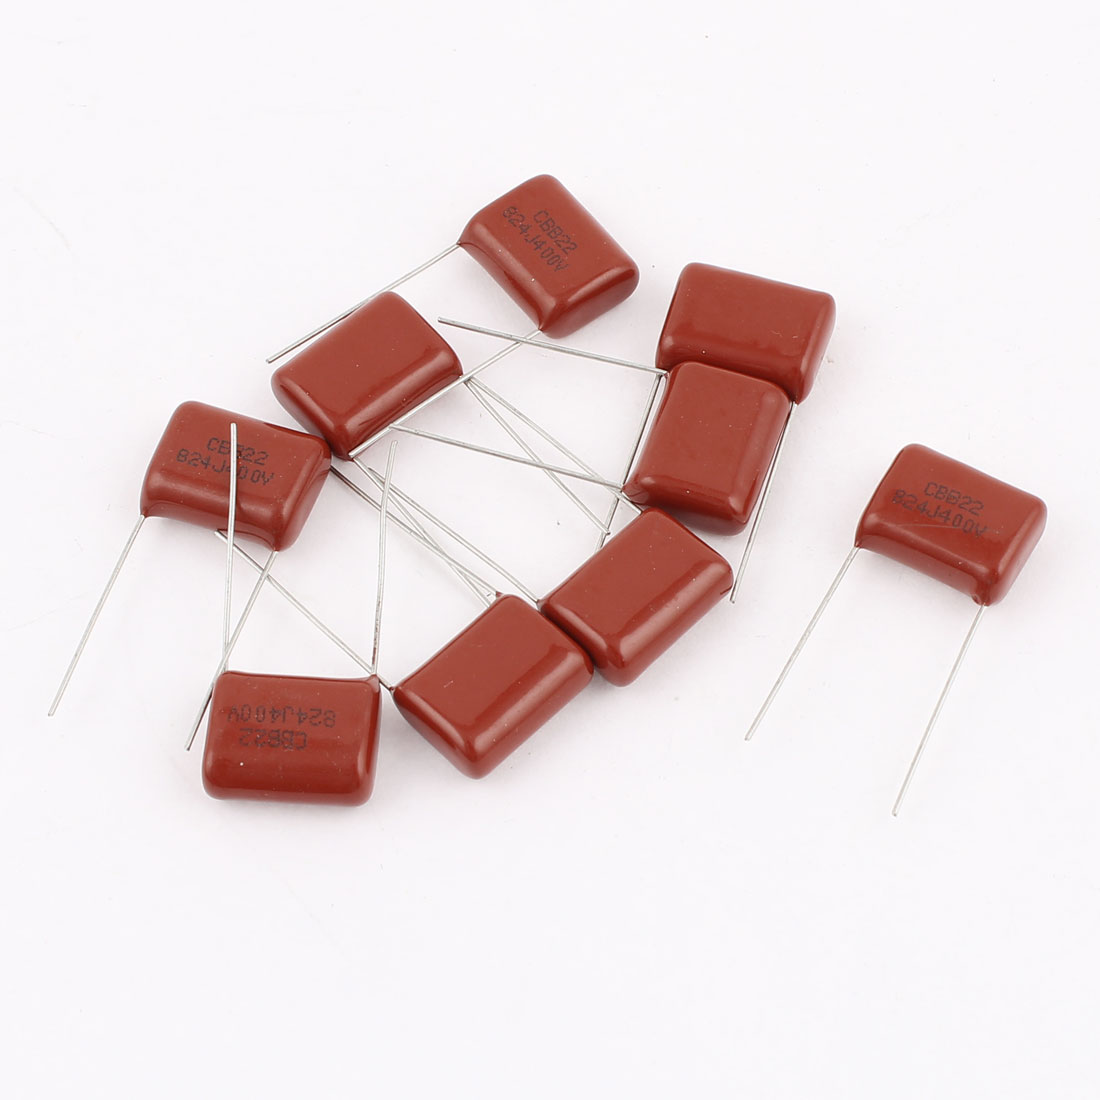 10pcs 824J 400V 0.82uF 5% Tolerance Metallized Polyester Film Capacitors CBB22